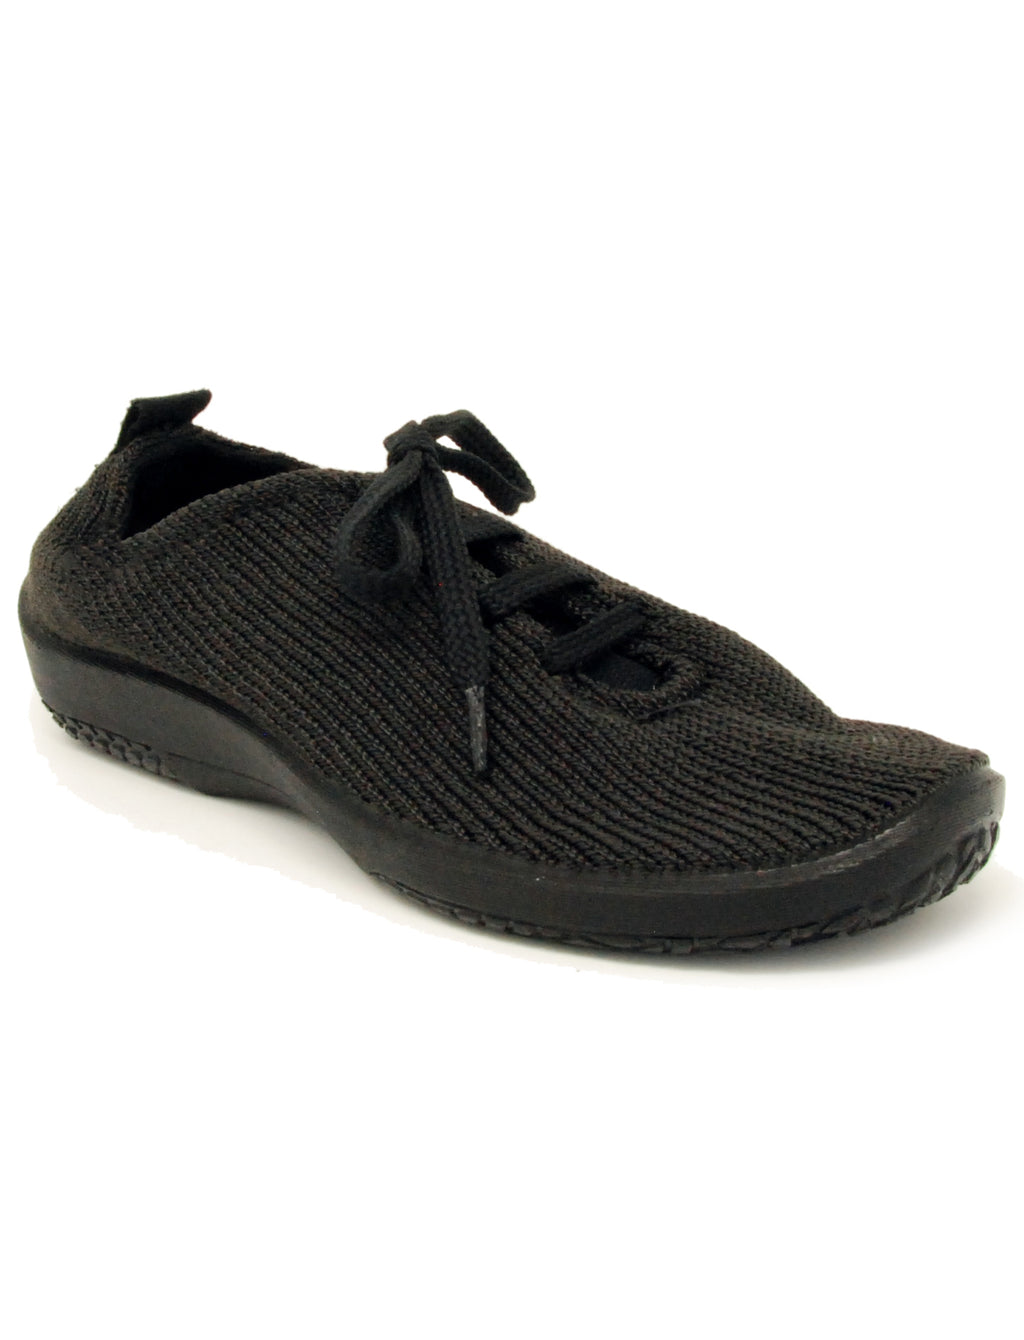 Arcopedico LS 1151 Black Knit Shoe